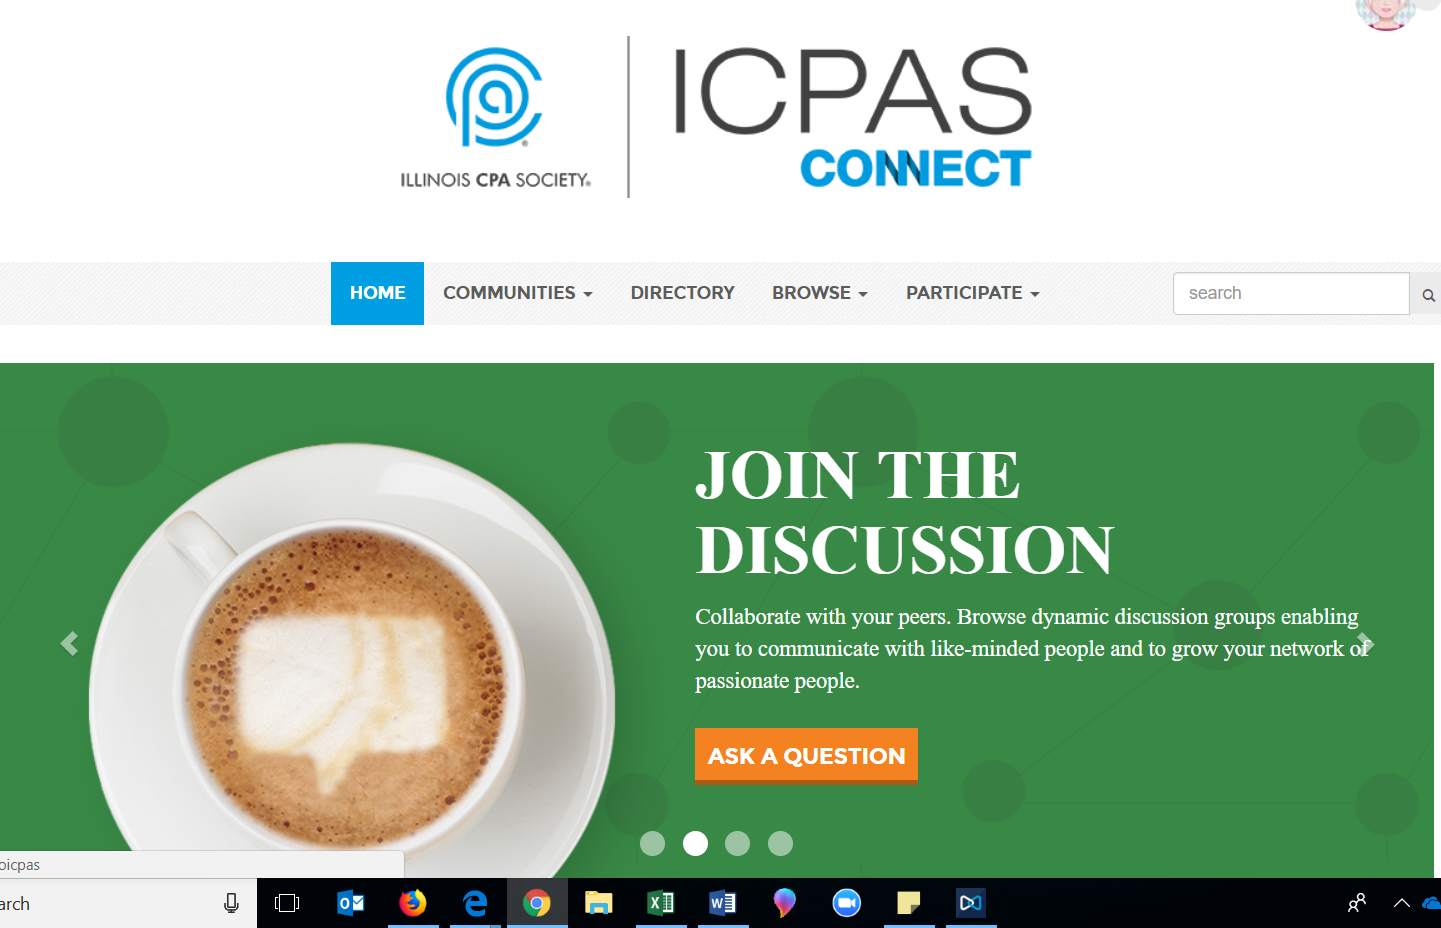 icpas connect image